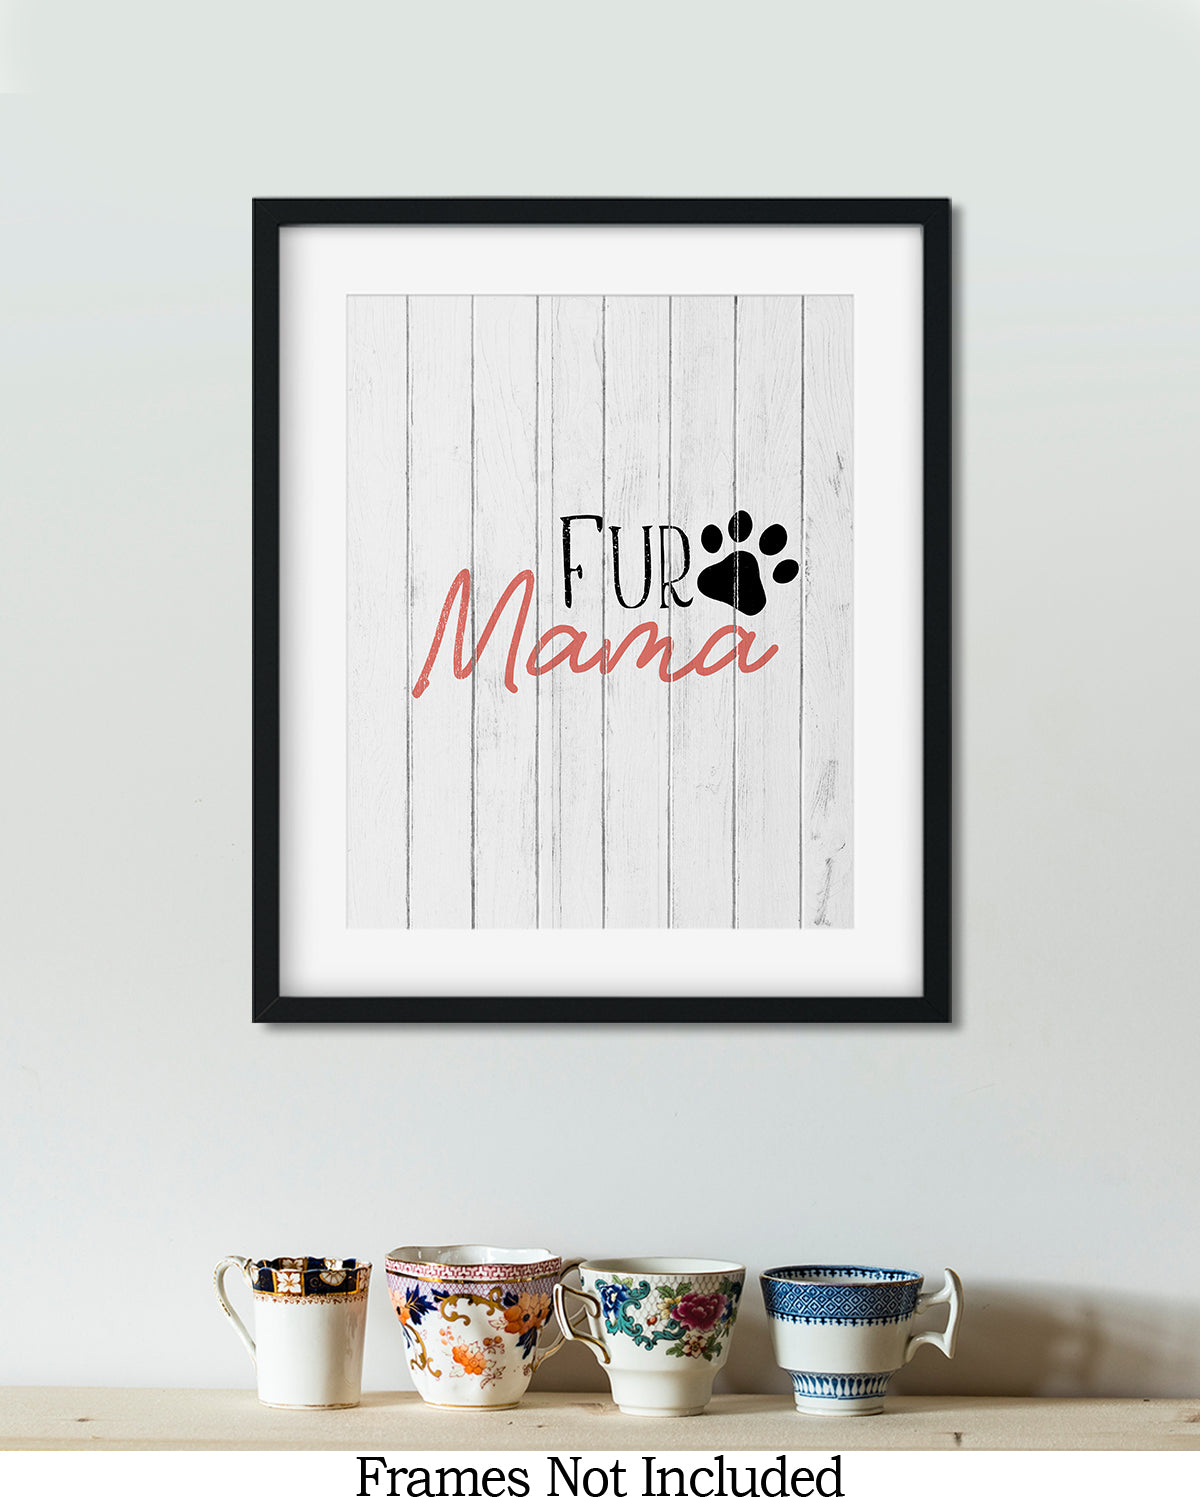 Fur Mama - Wall Decor Art Print with White Woodgrain background - 8x10 unframed print for mothers